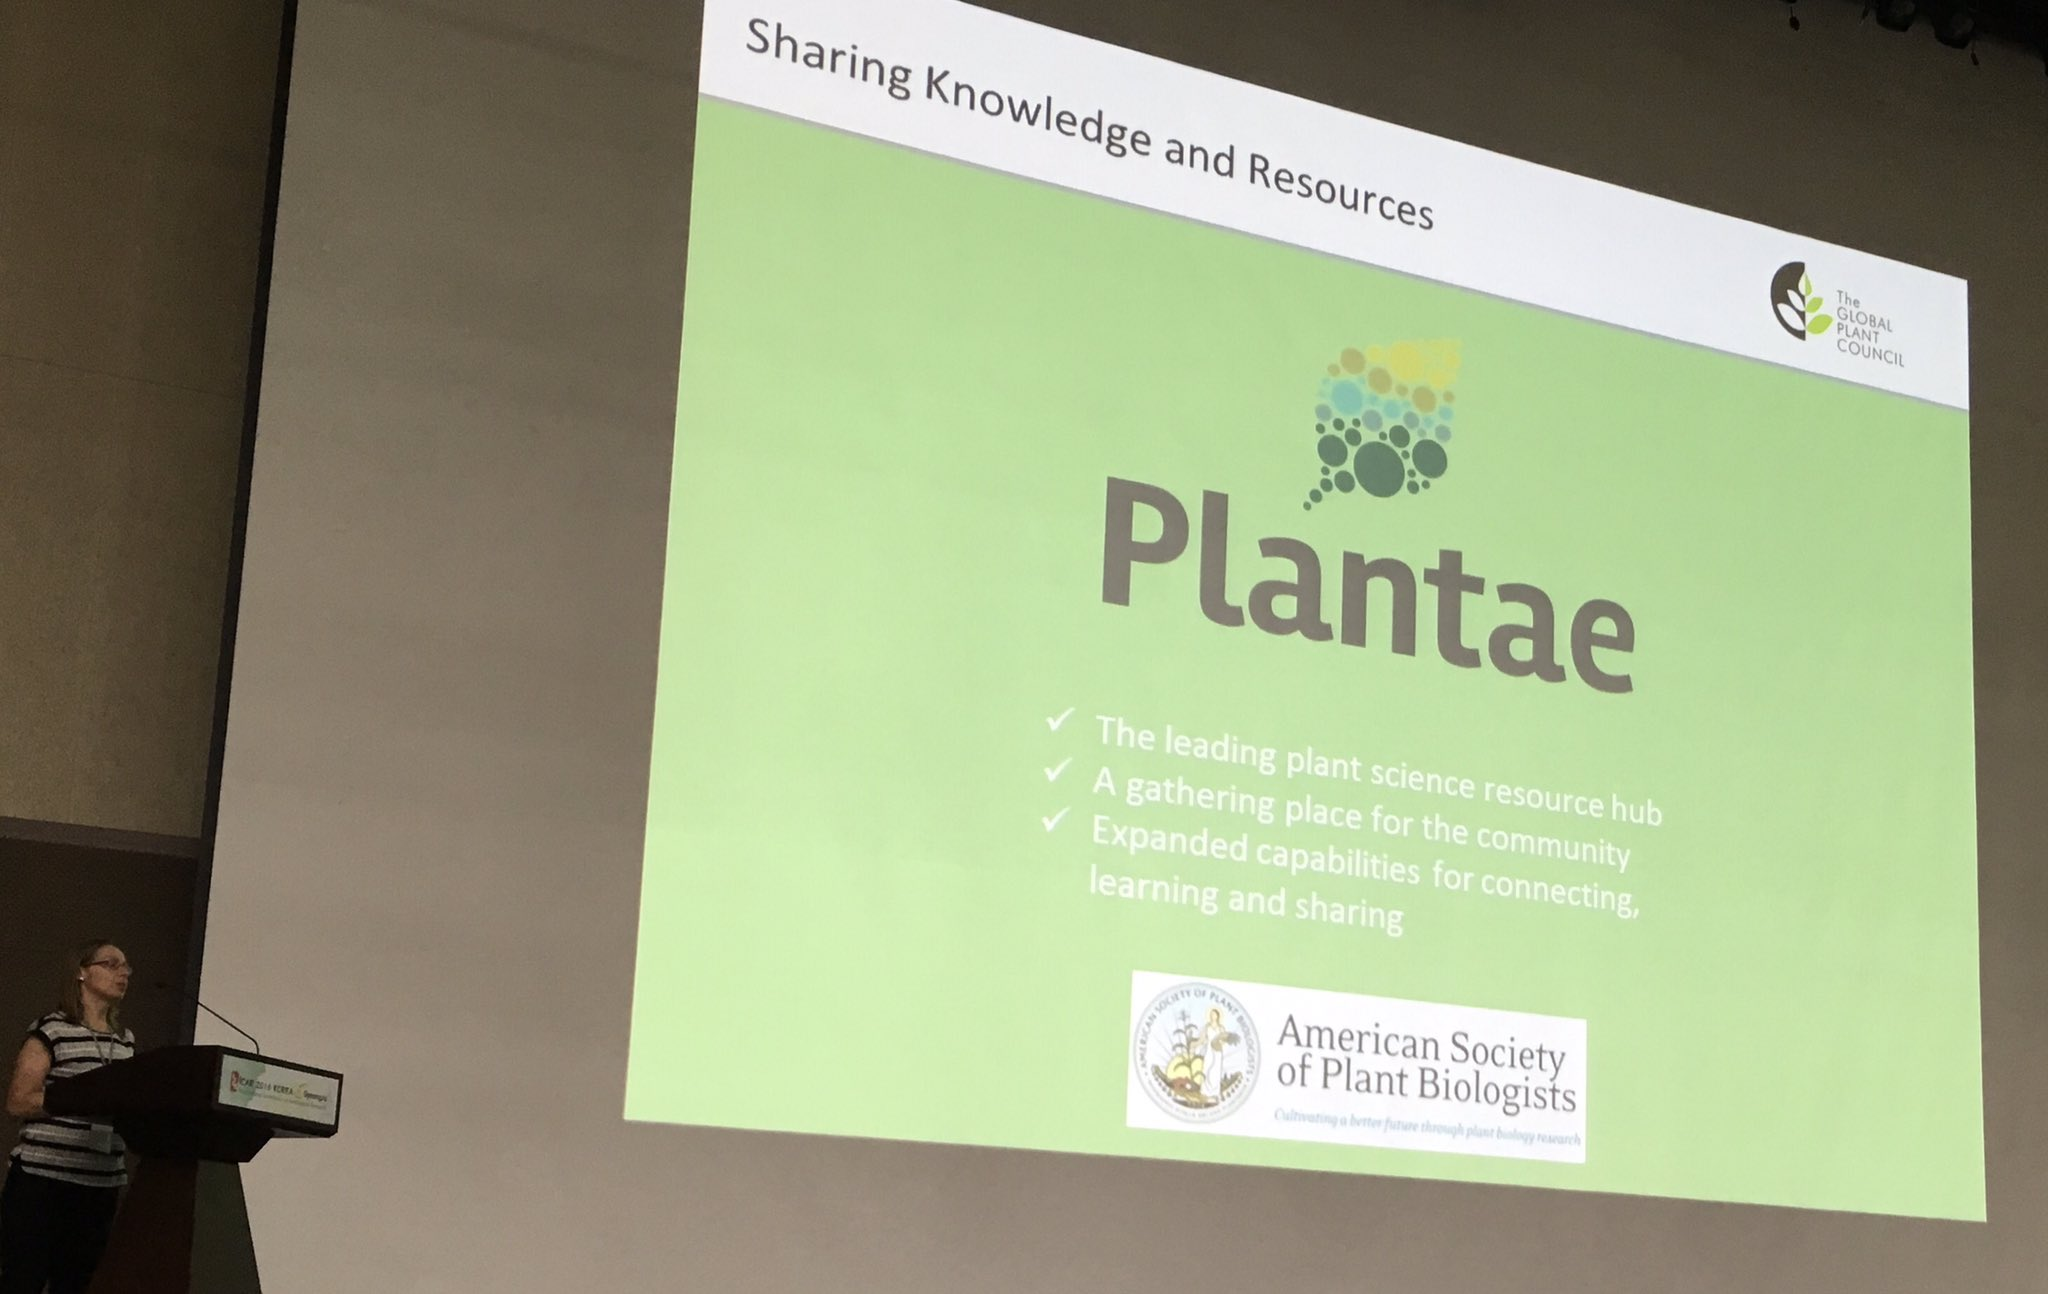 #icar_2016 Ruth introduces @aspb @GlobalPlantGPC Plantae. They're all about worldwide collaboration on all scales! https://t.co/kp8oPB3Zy8